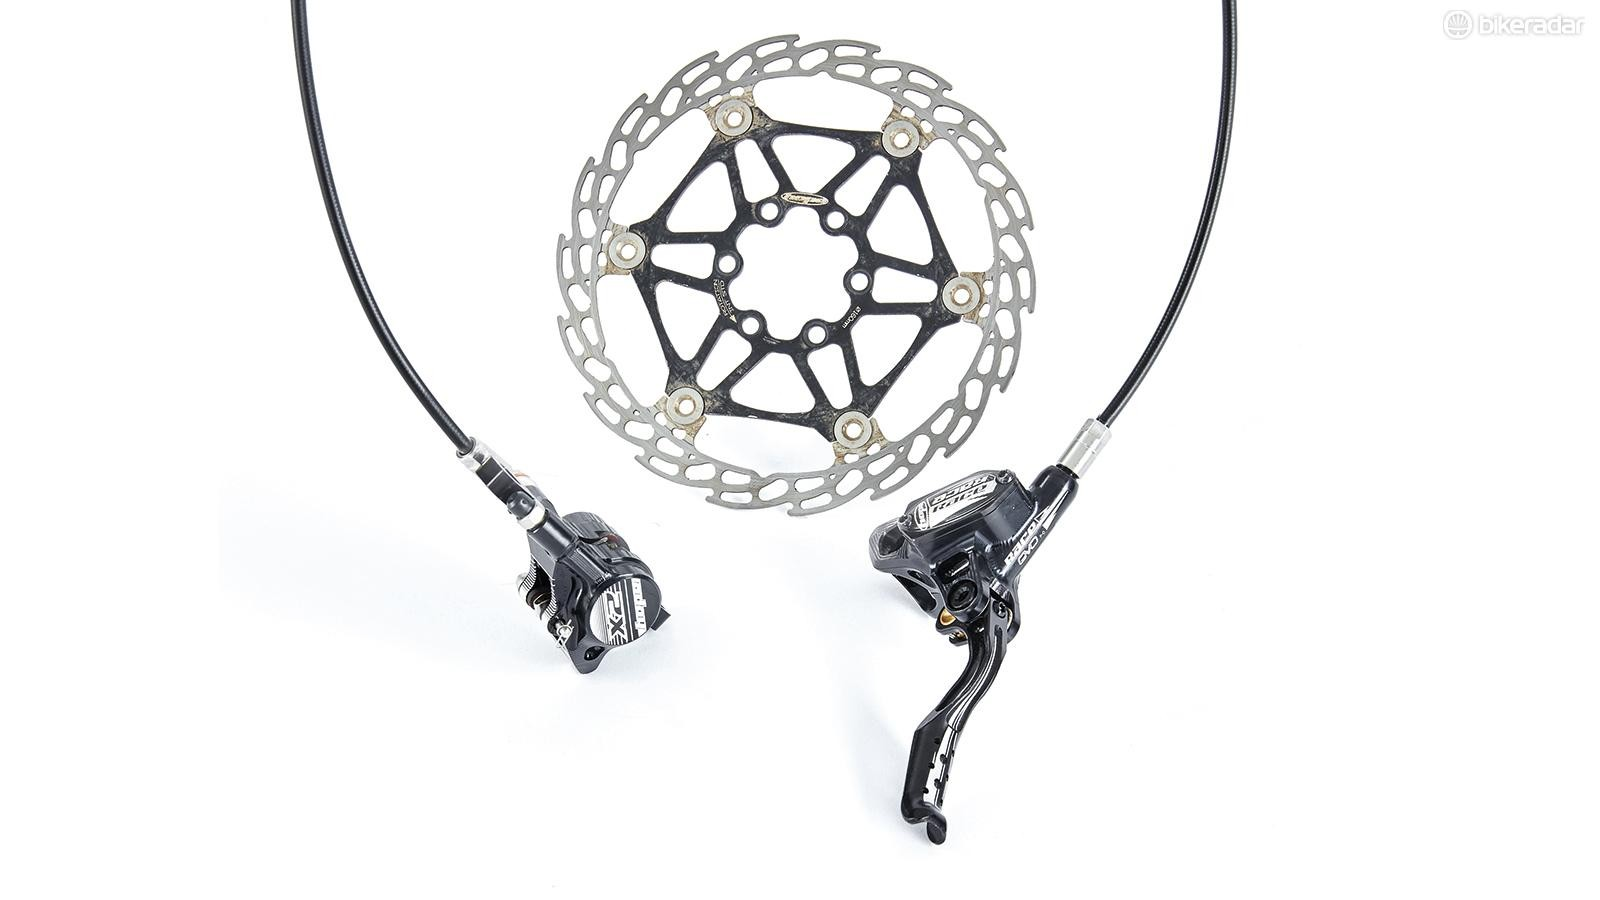 Hope's X2 Race Evo disc brakes are dainty but pretty bombproof